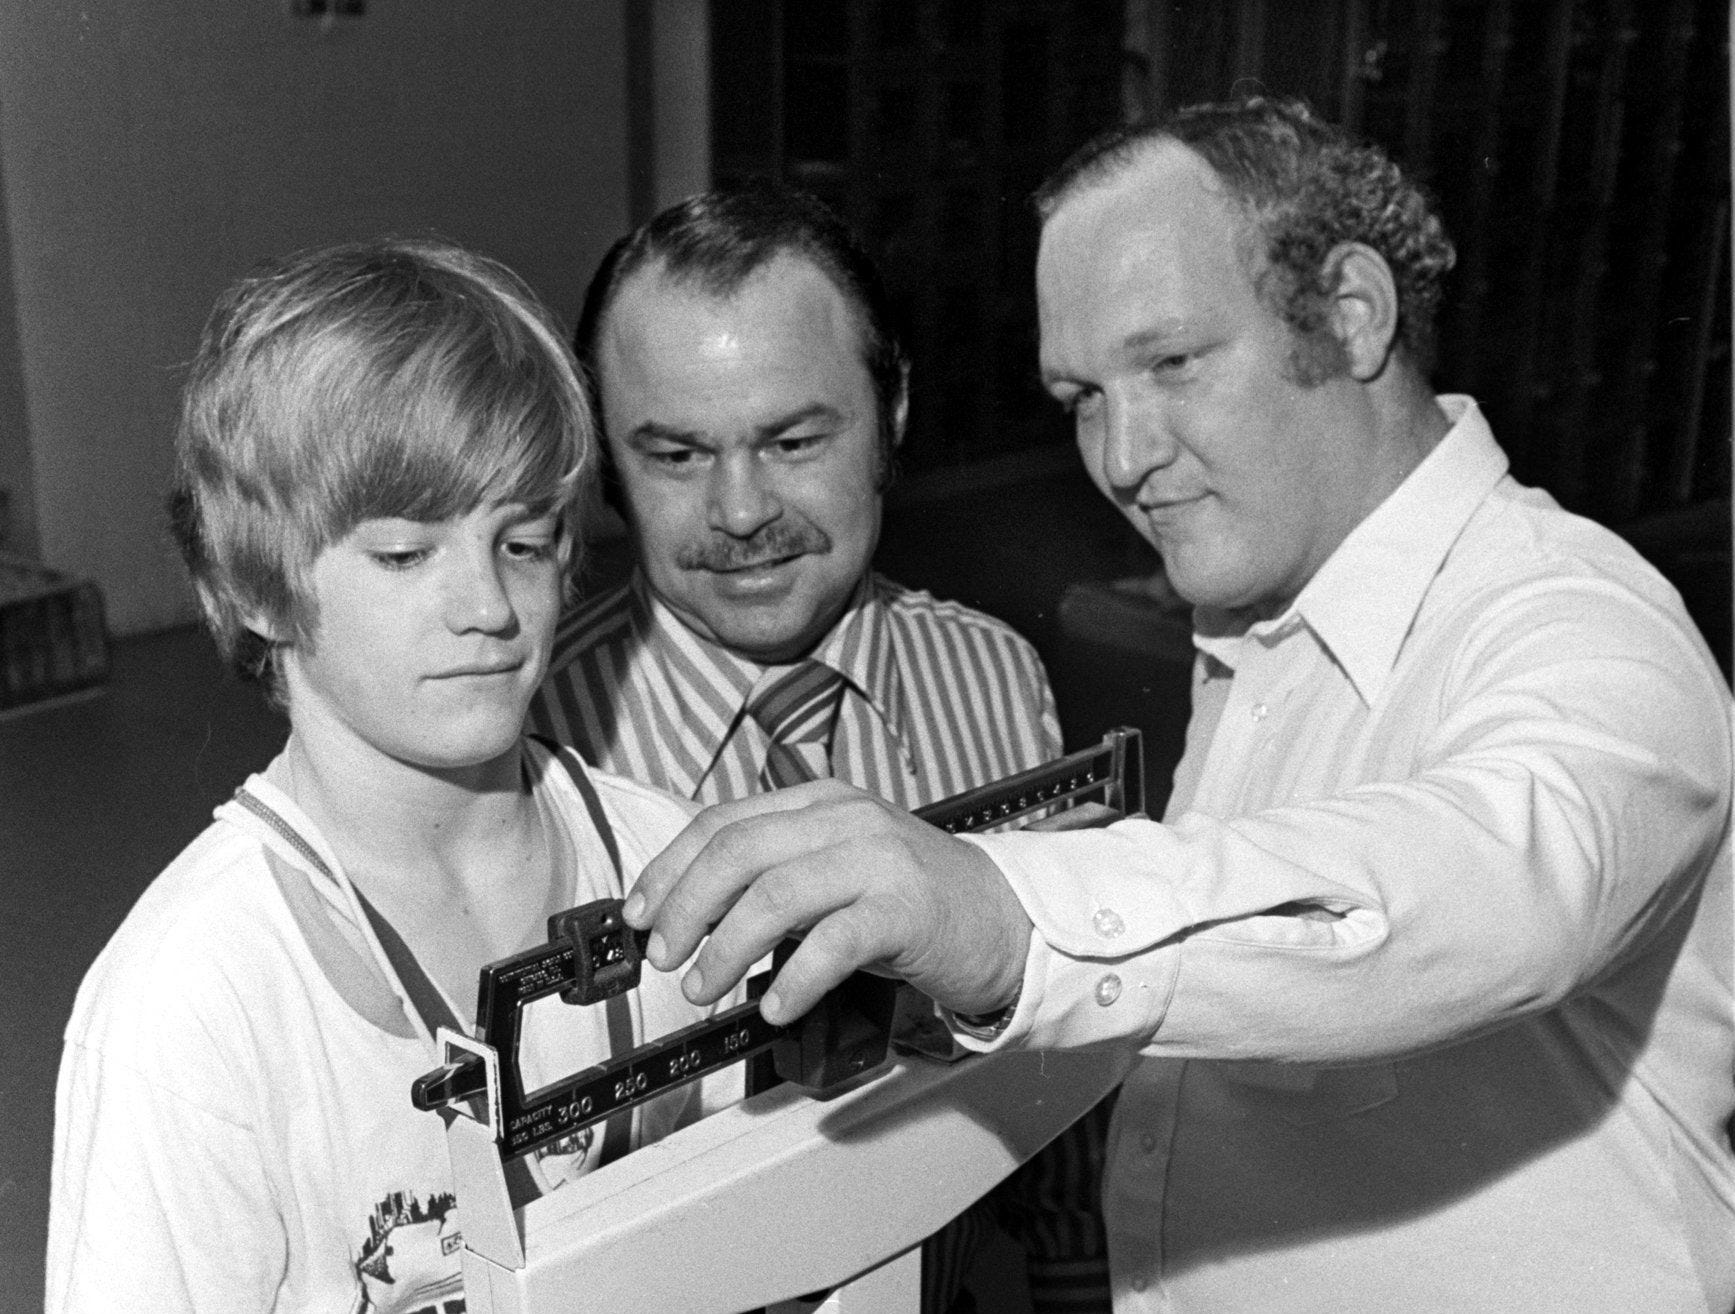 Bishop Byrne wrestler David James is weighed at 98 pounds by his coach Carlo Prani (Center) and Larry Giannini in Jan 1975. The Red Knights are preparing to enter the HIllsboro Invitational Tournament in Nashville, along with Raleigh-Egypt and Germantown.